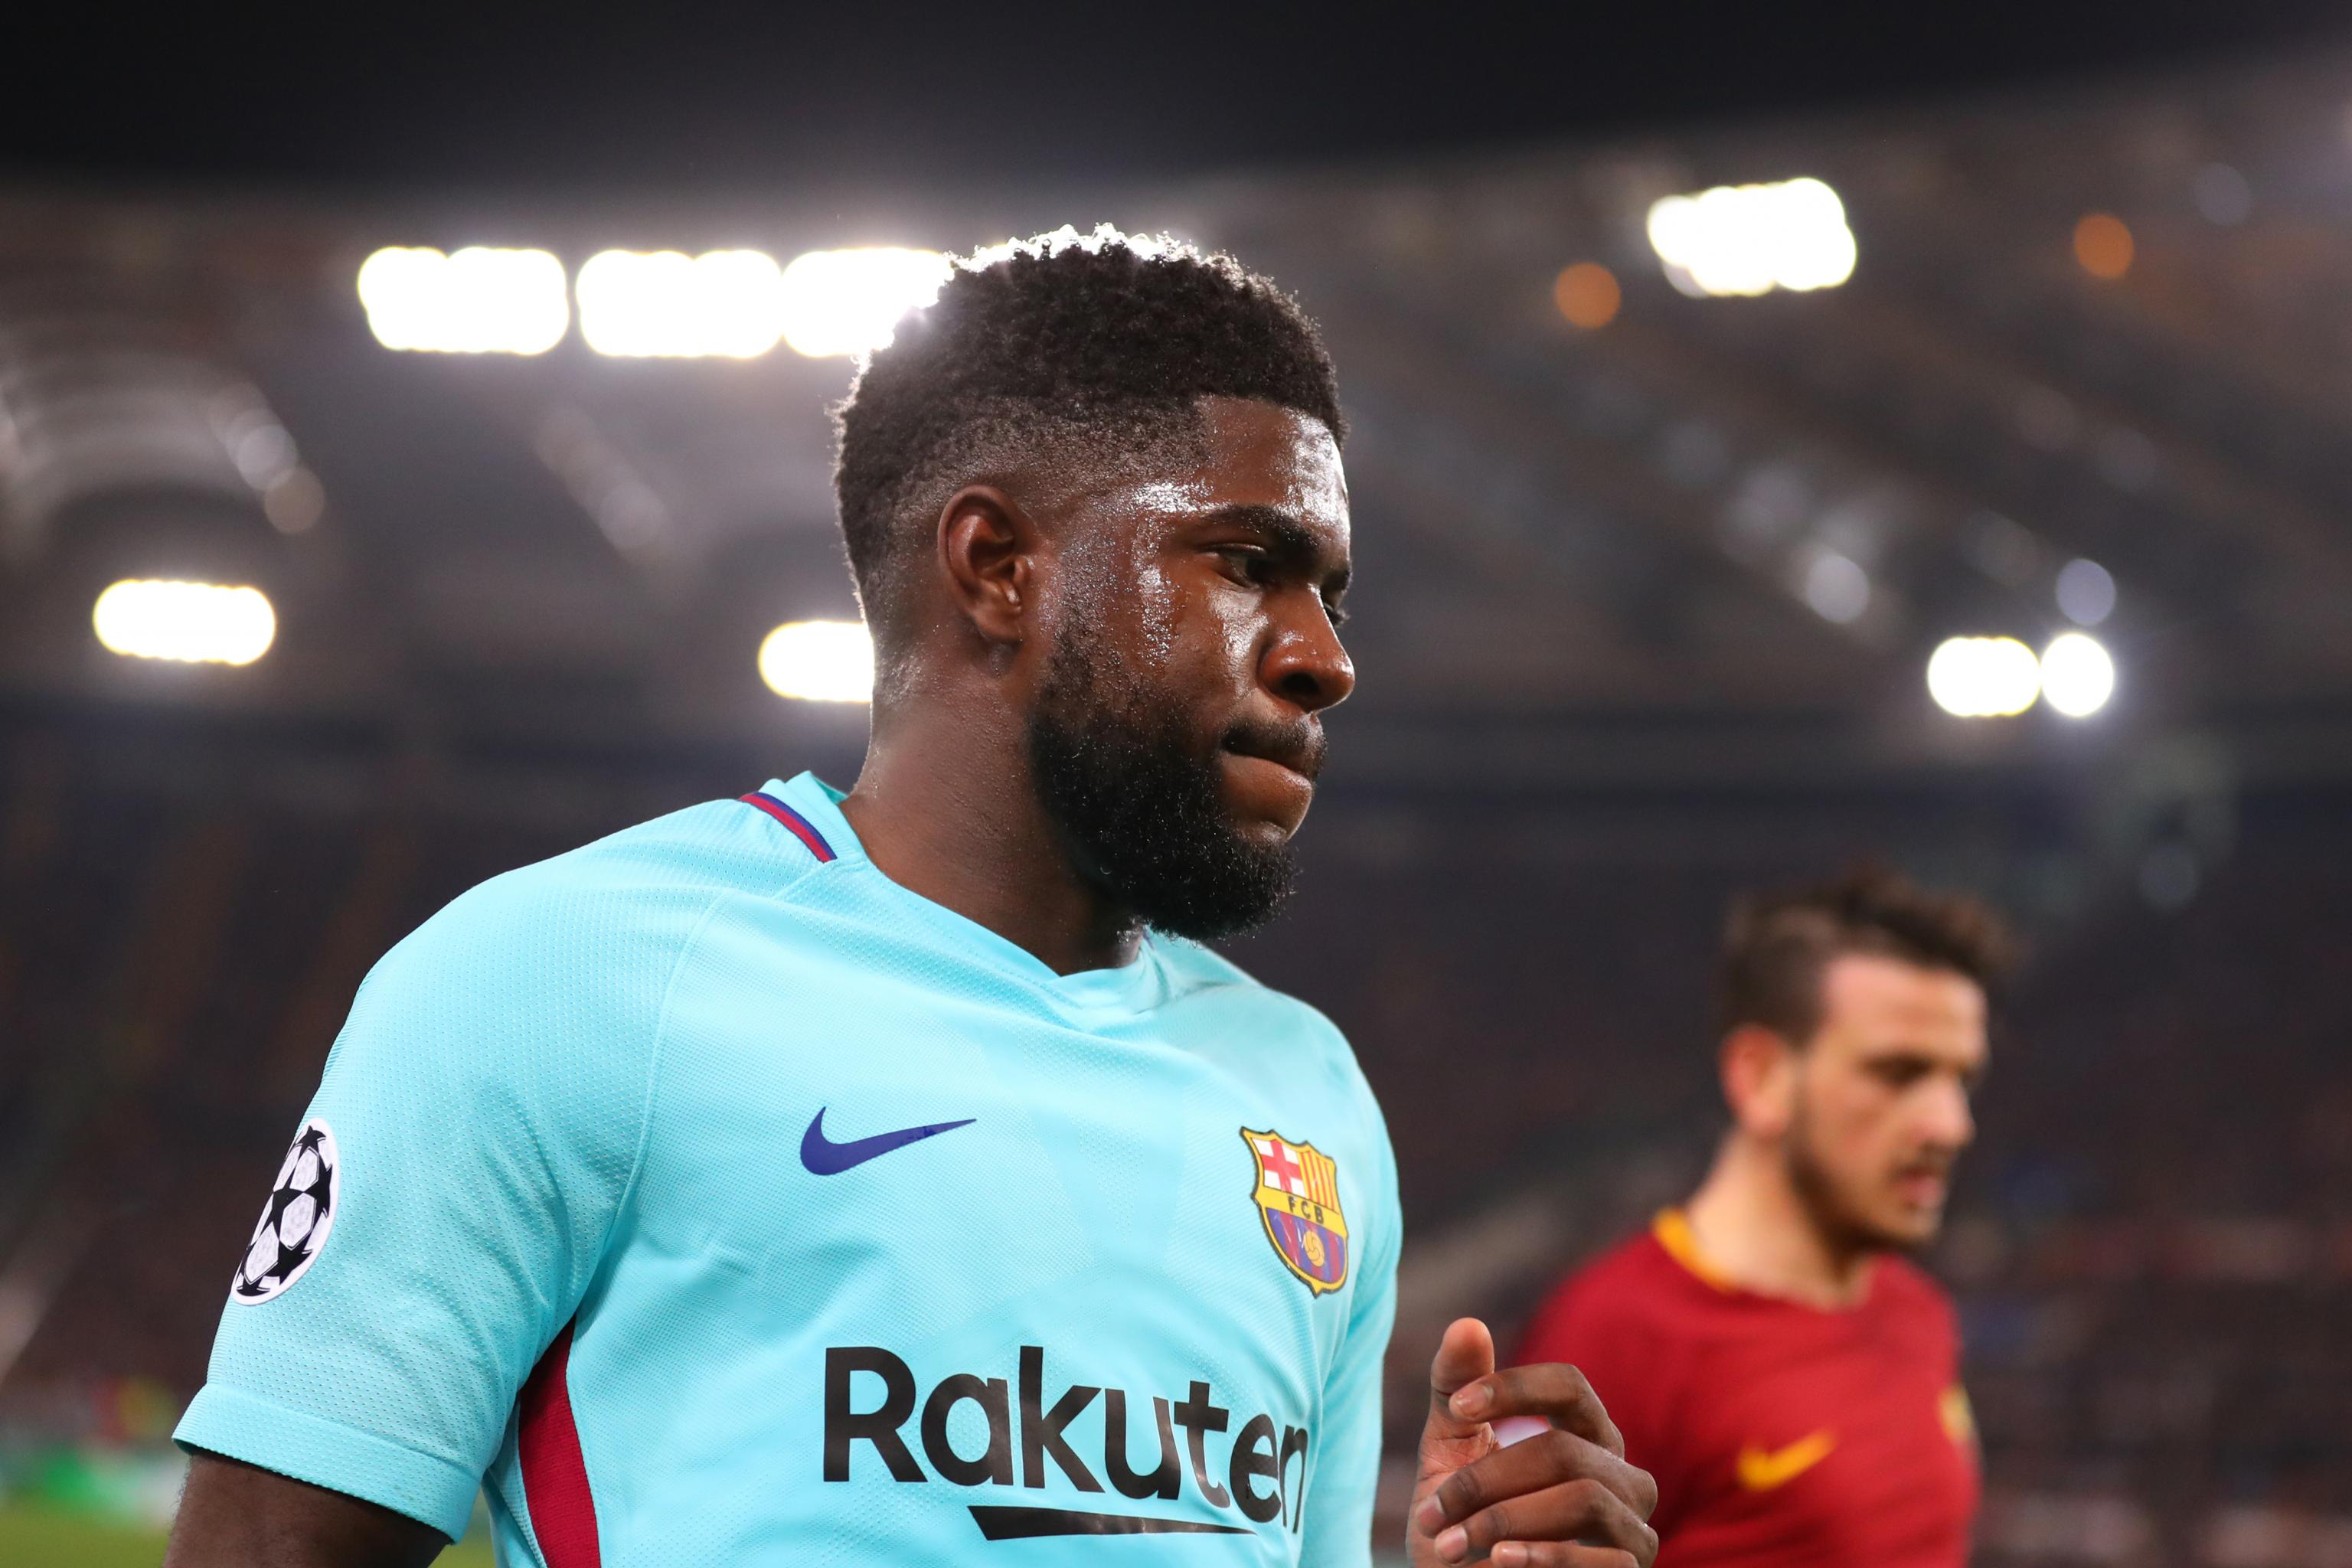 outlet store 7d5f3 01660 Barcelona Transfer News: Latest on Samuel Umtiti Contract ...